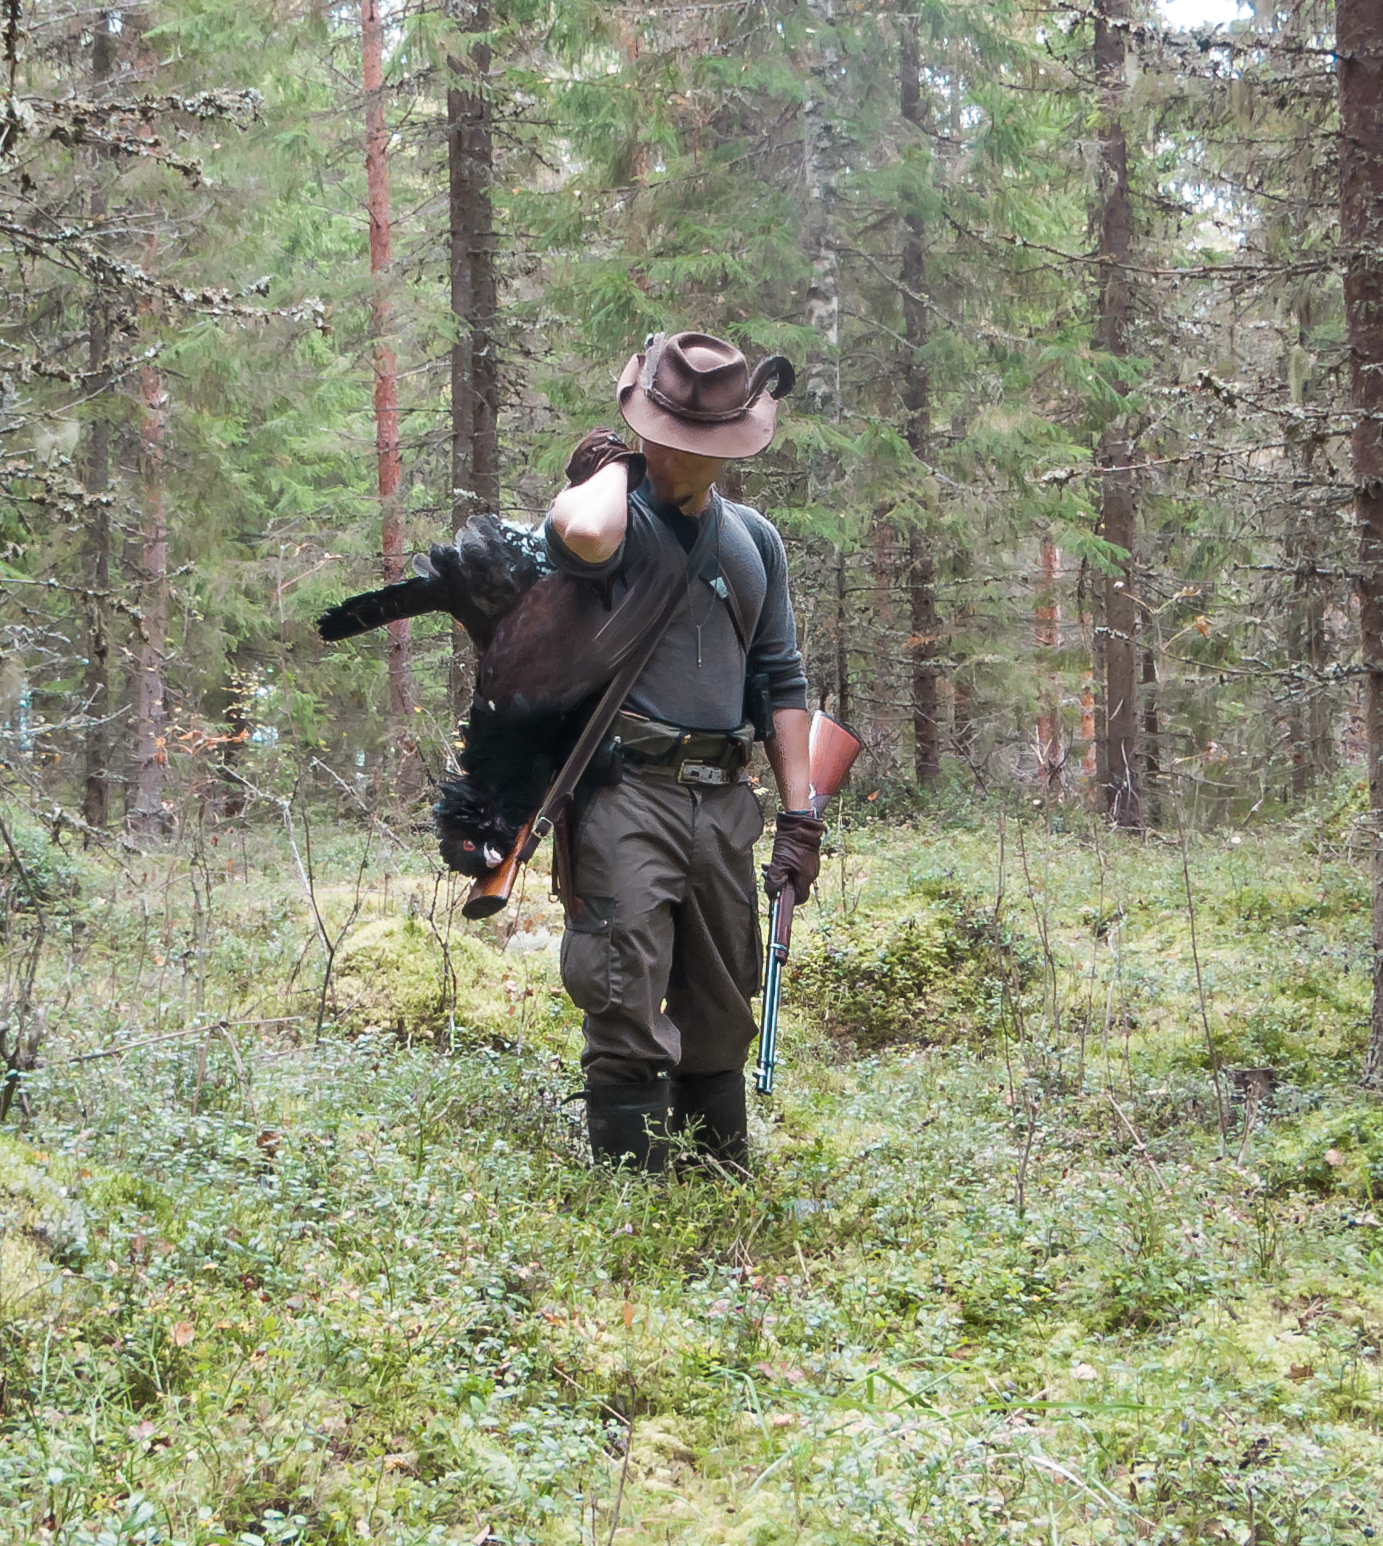 Me posing with my capercaillie catch. Metsosaalis.